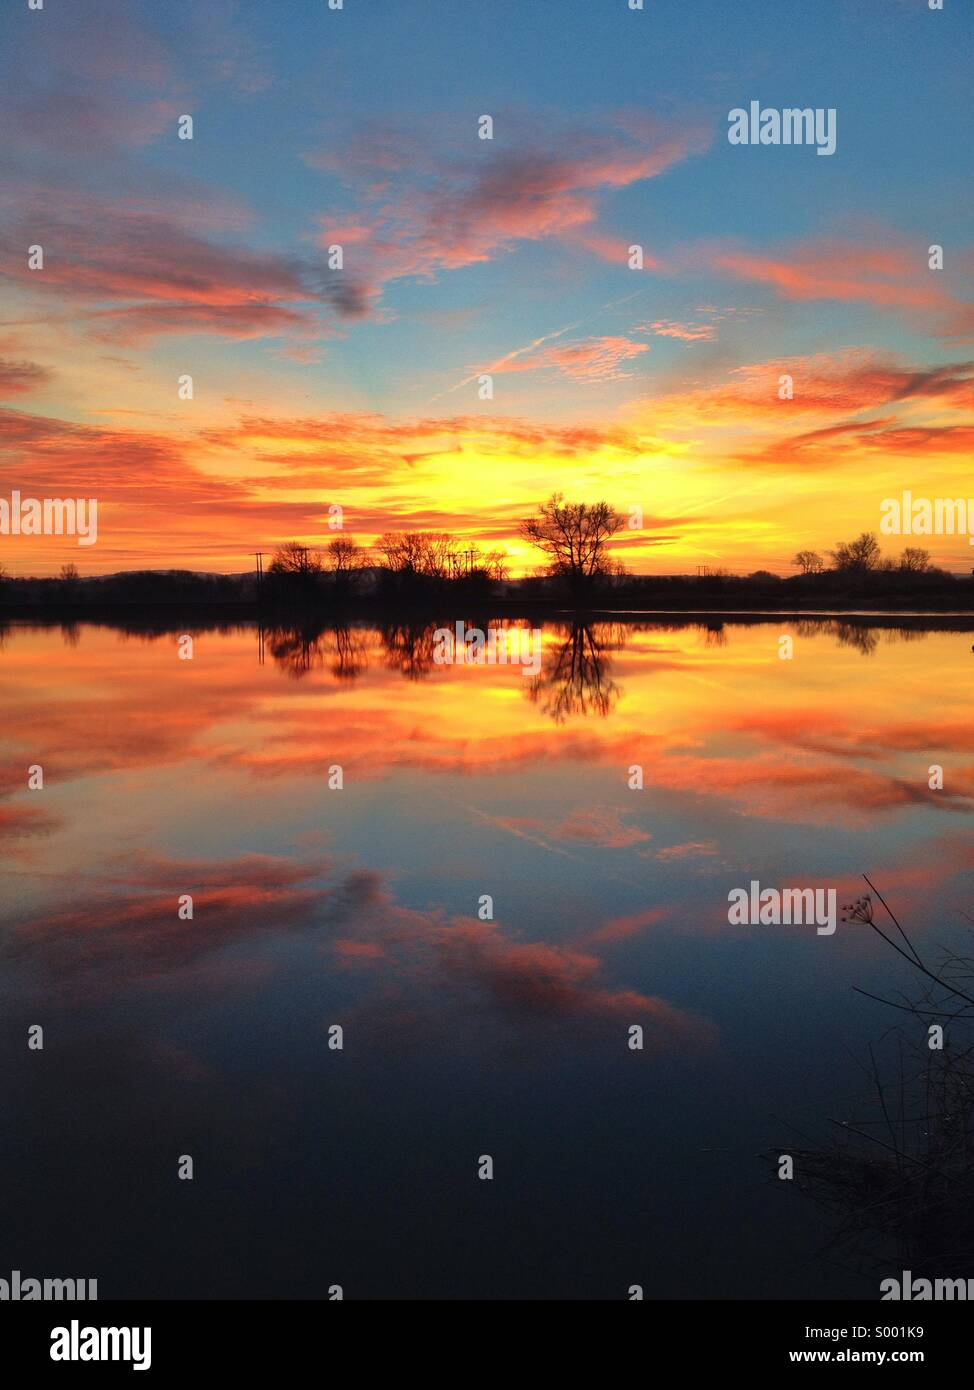 Sunrise over a river - Stock Image